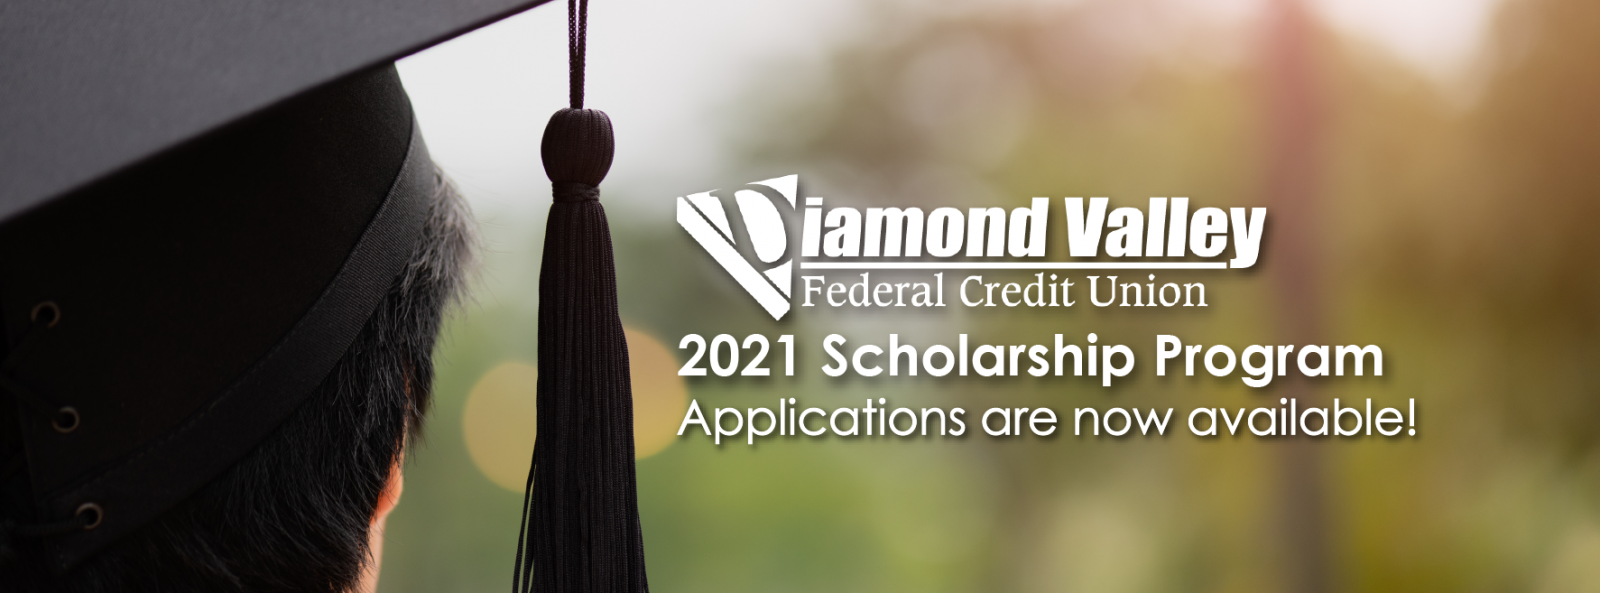 2021 Diamond Valley Federal Credit Union Scholarship - Apply Now!